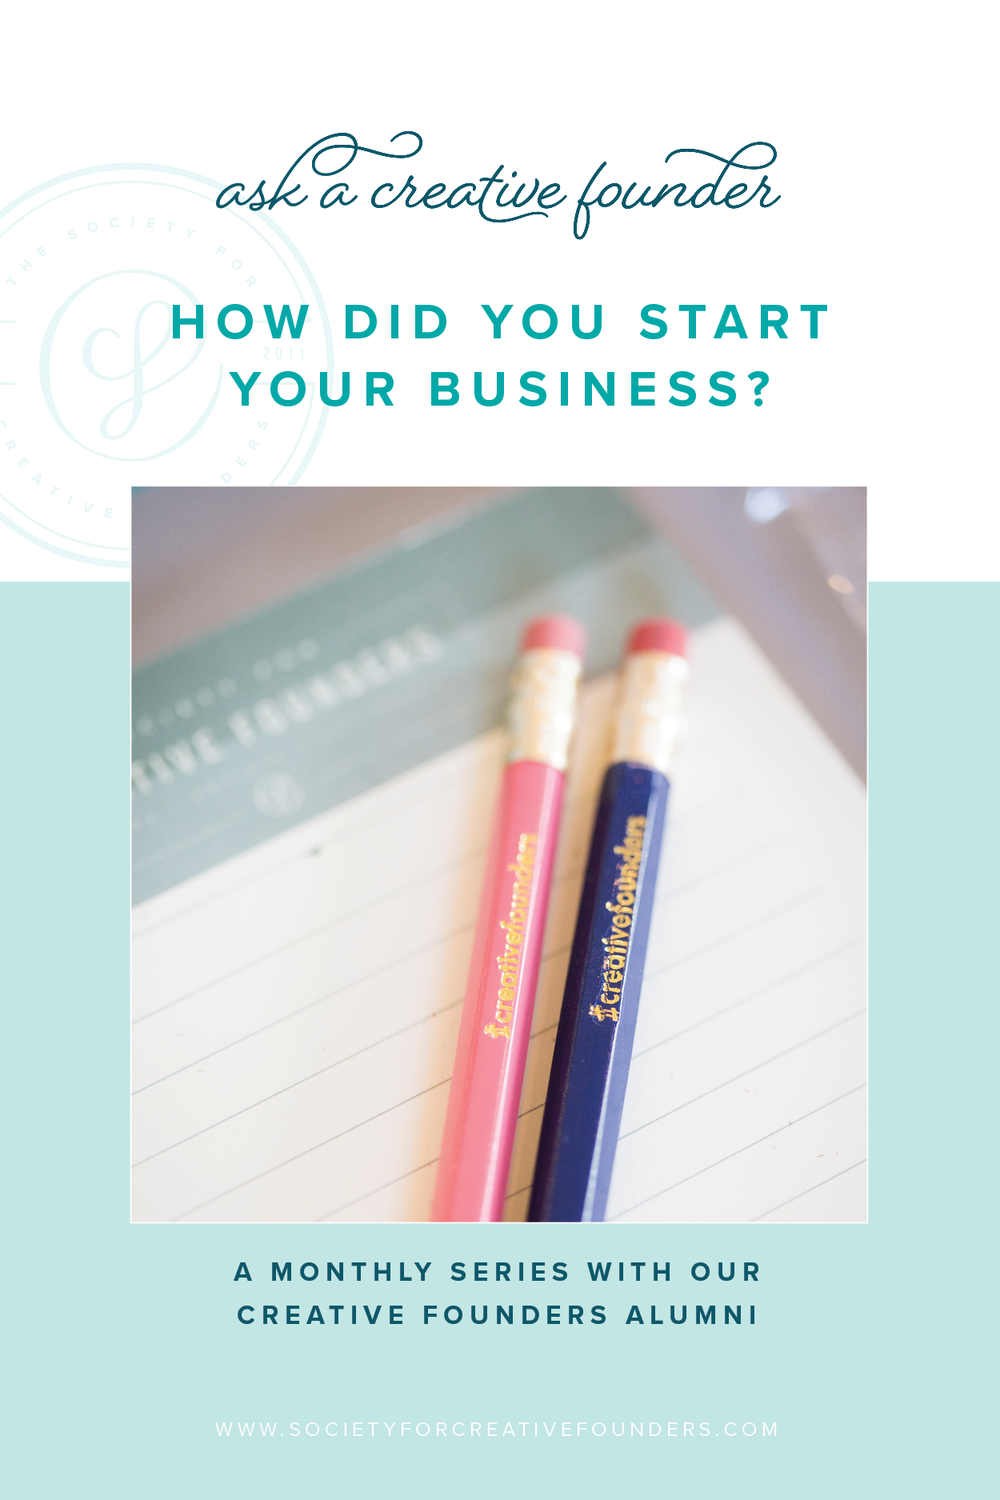 How did you start your business? Answers and advice from Creative Founders who have done it.